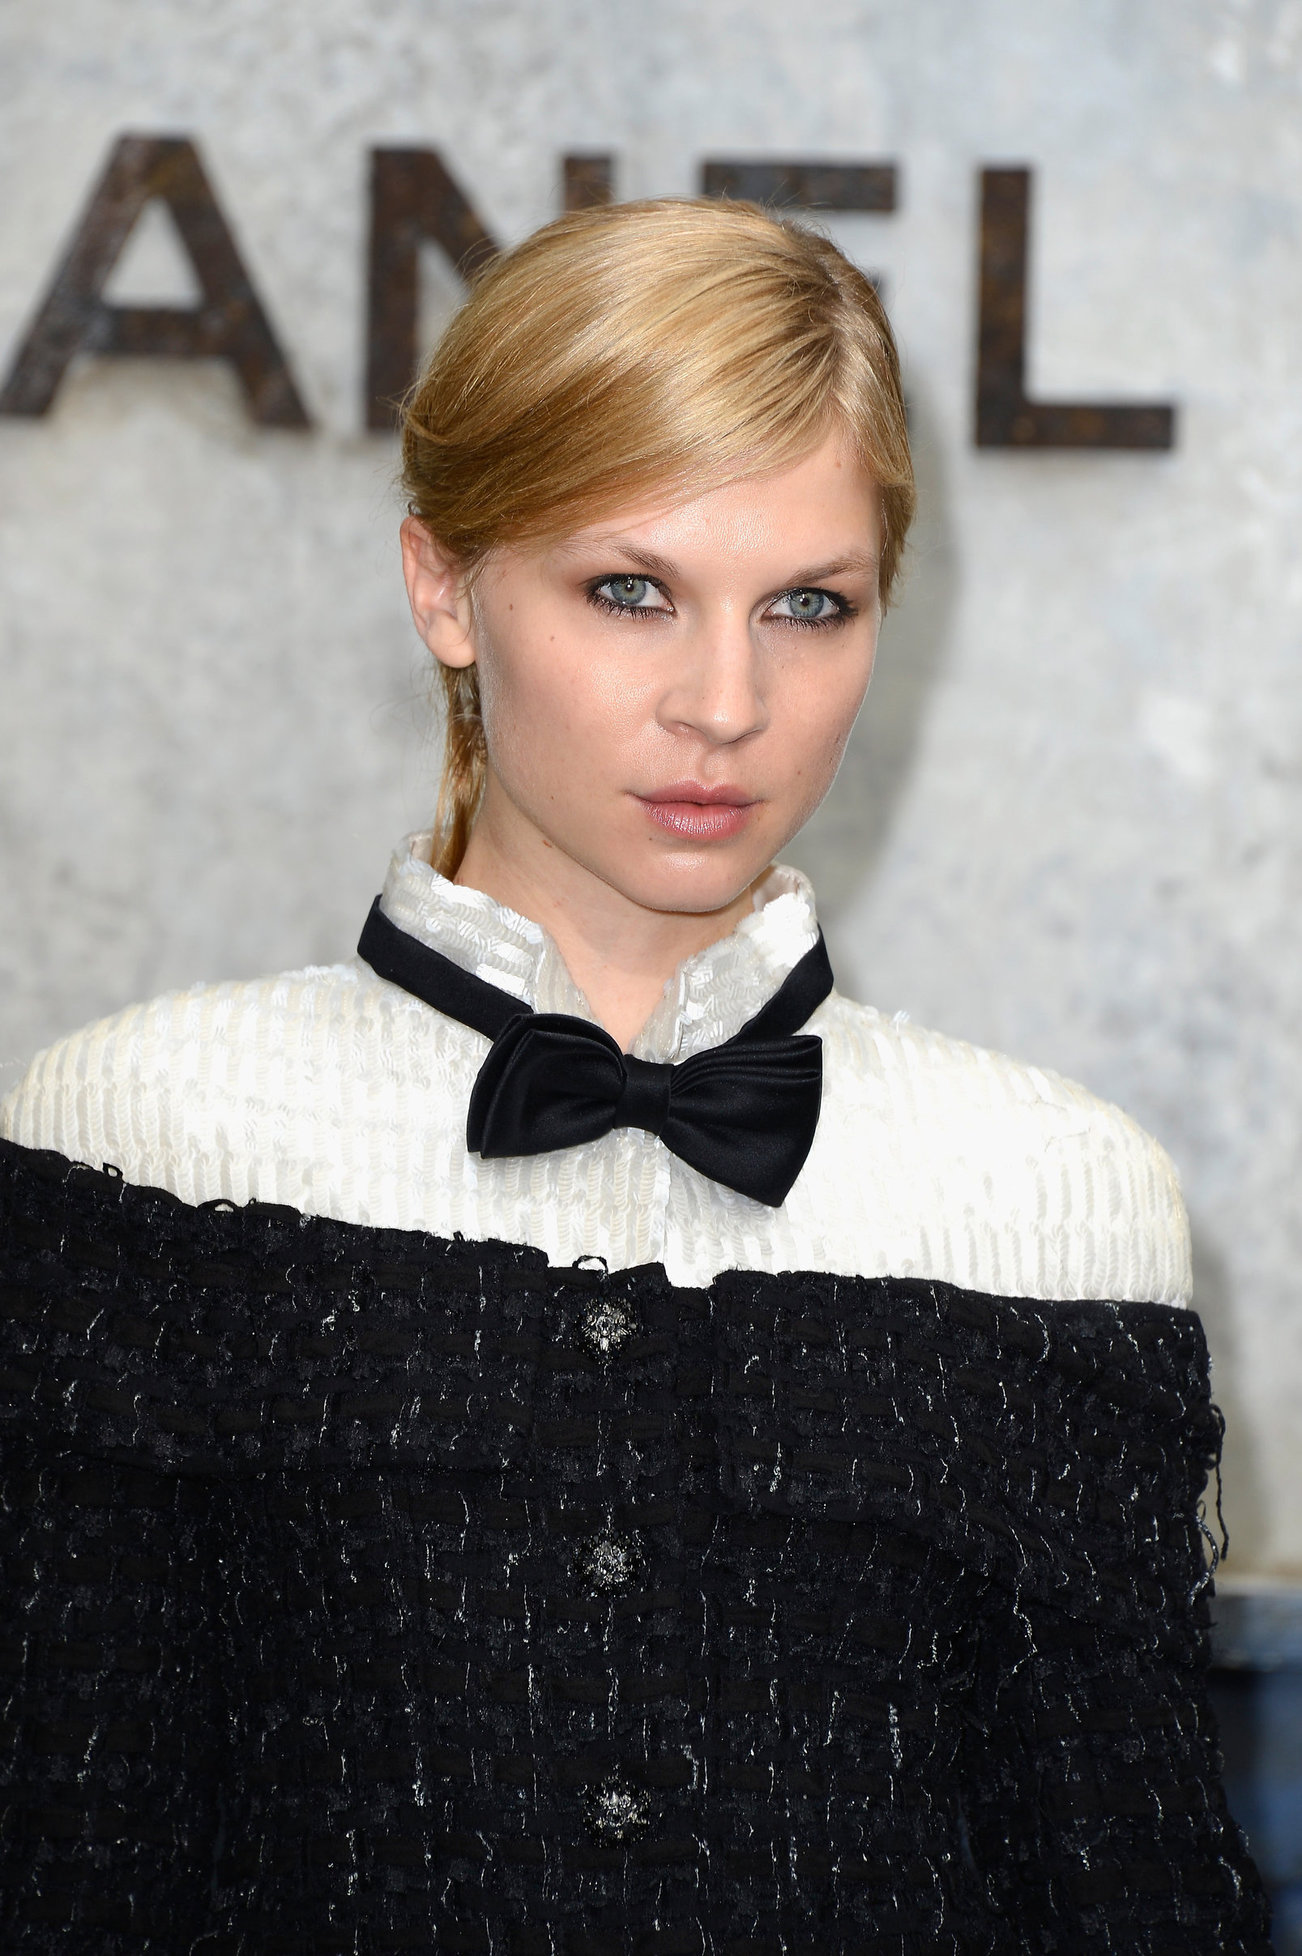 Clemence Poesy Chanel: Photocall- Paris Fashion Week Haute Couture F/W 2013-2014, 02 Jul 2013